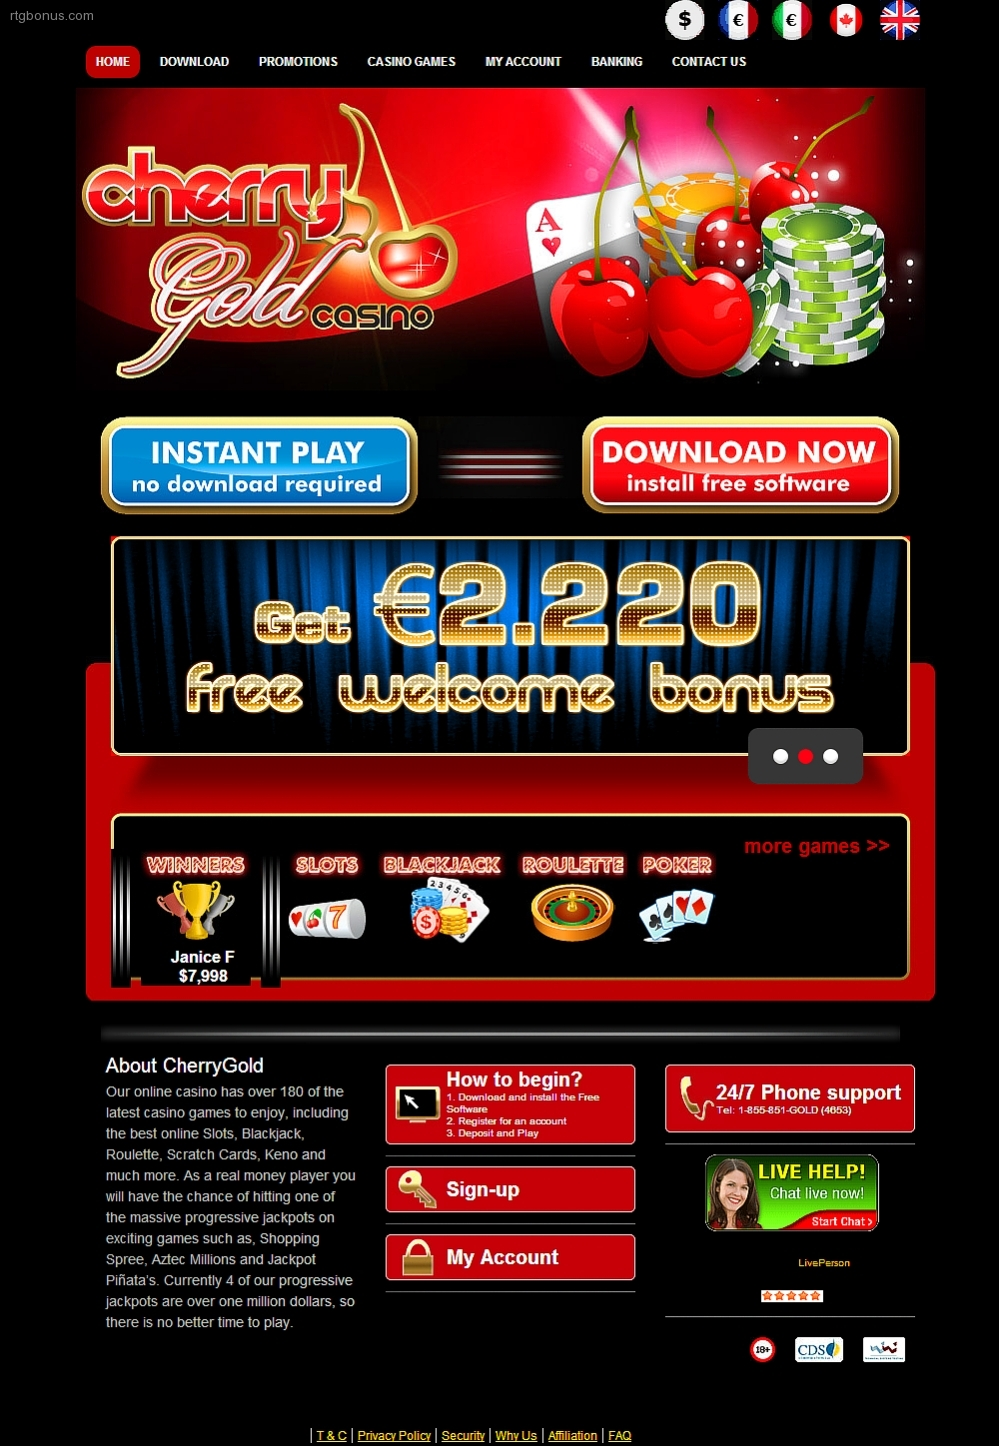 405% Deposit match bonus at Box 24 Casino